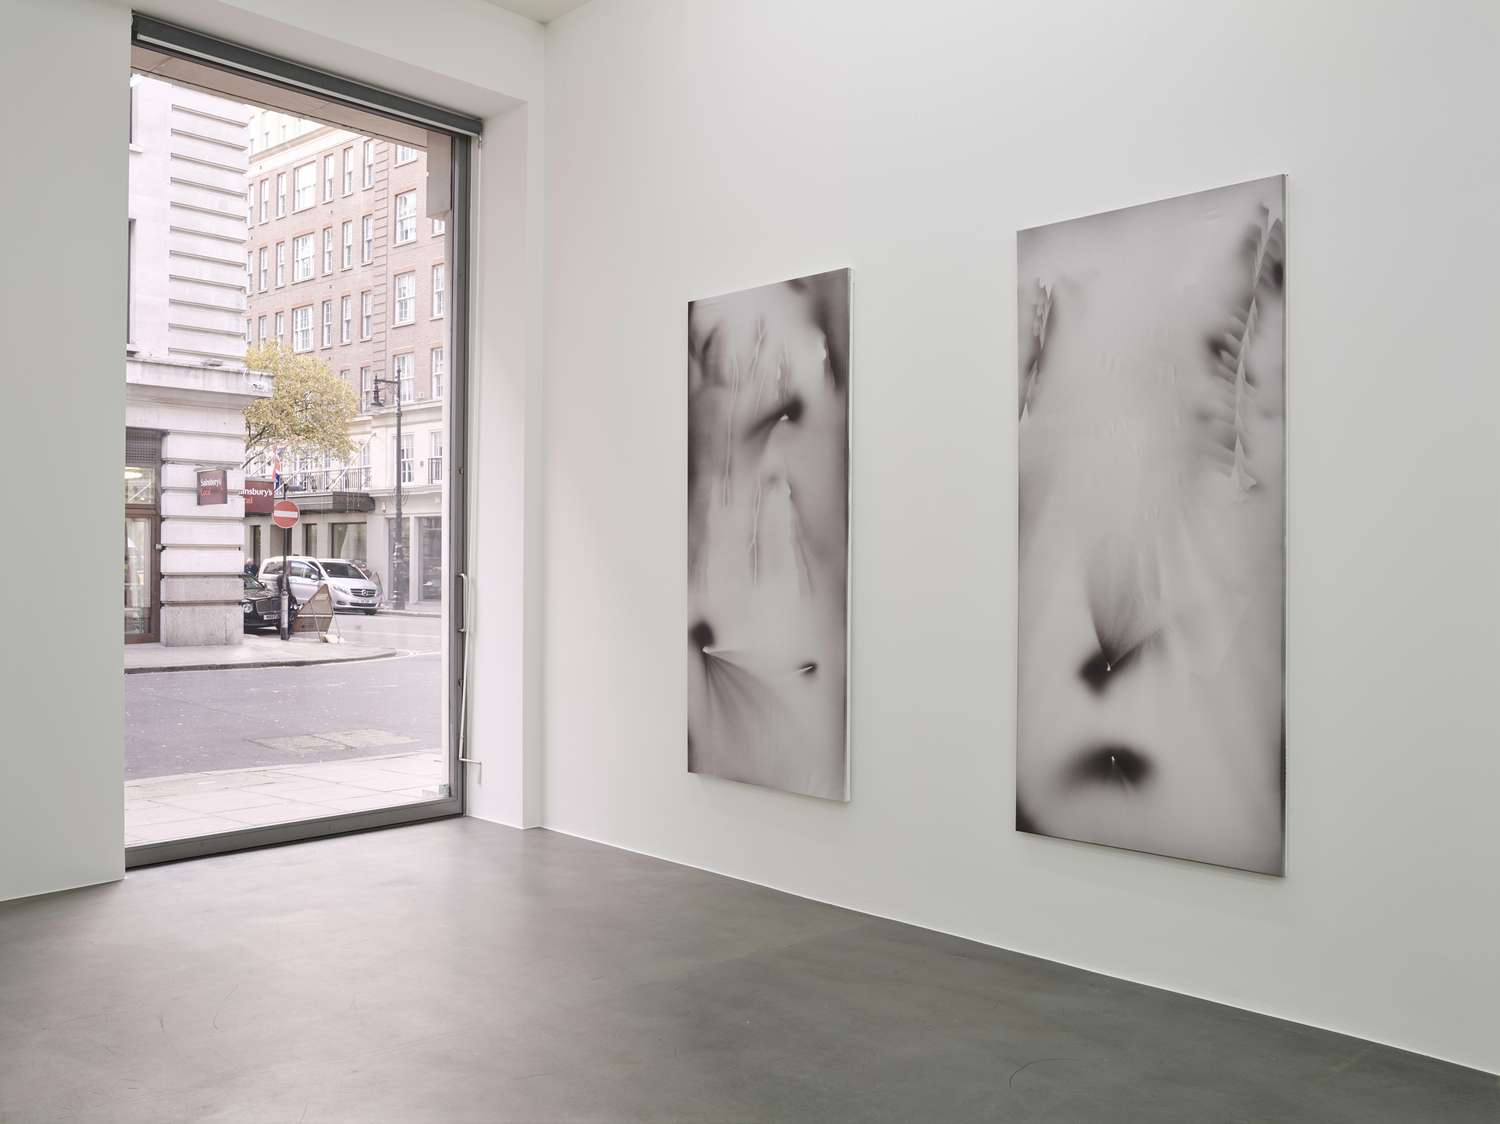 JZ_2016_SOME SCREEN MODS_Simon Lee Gallery, London_Installation View_P (4)